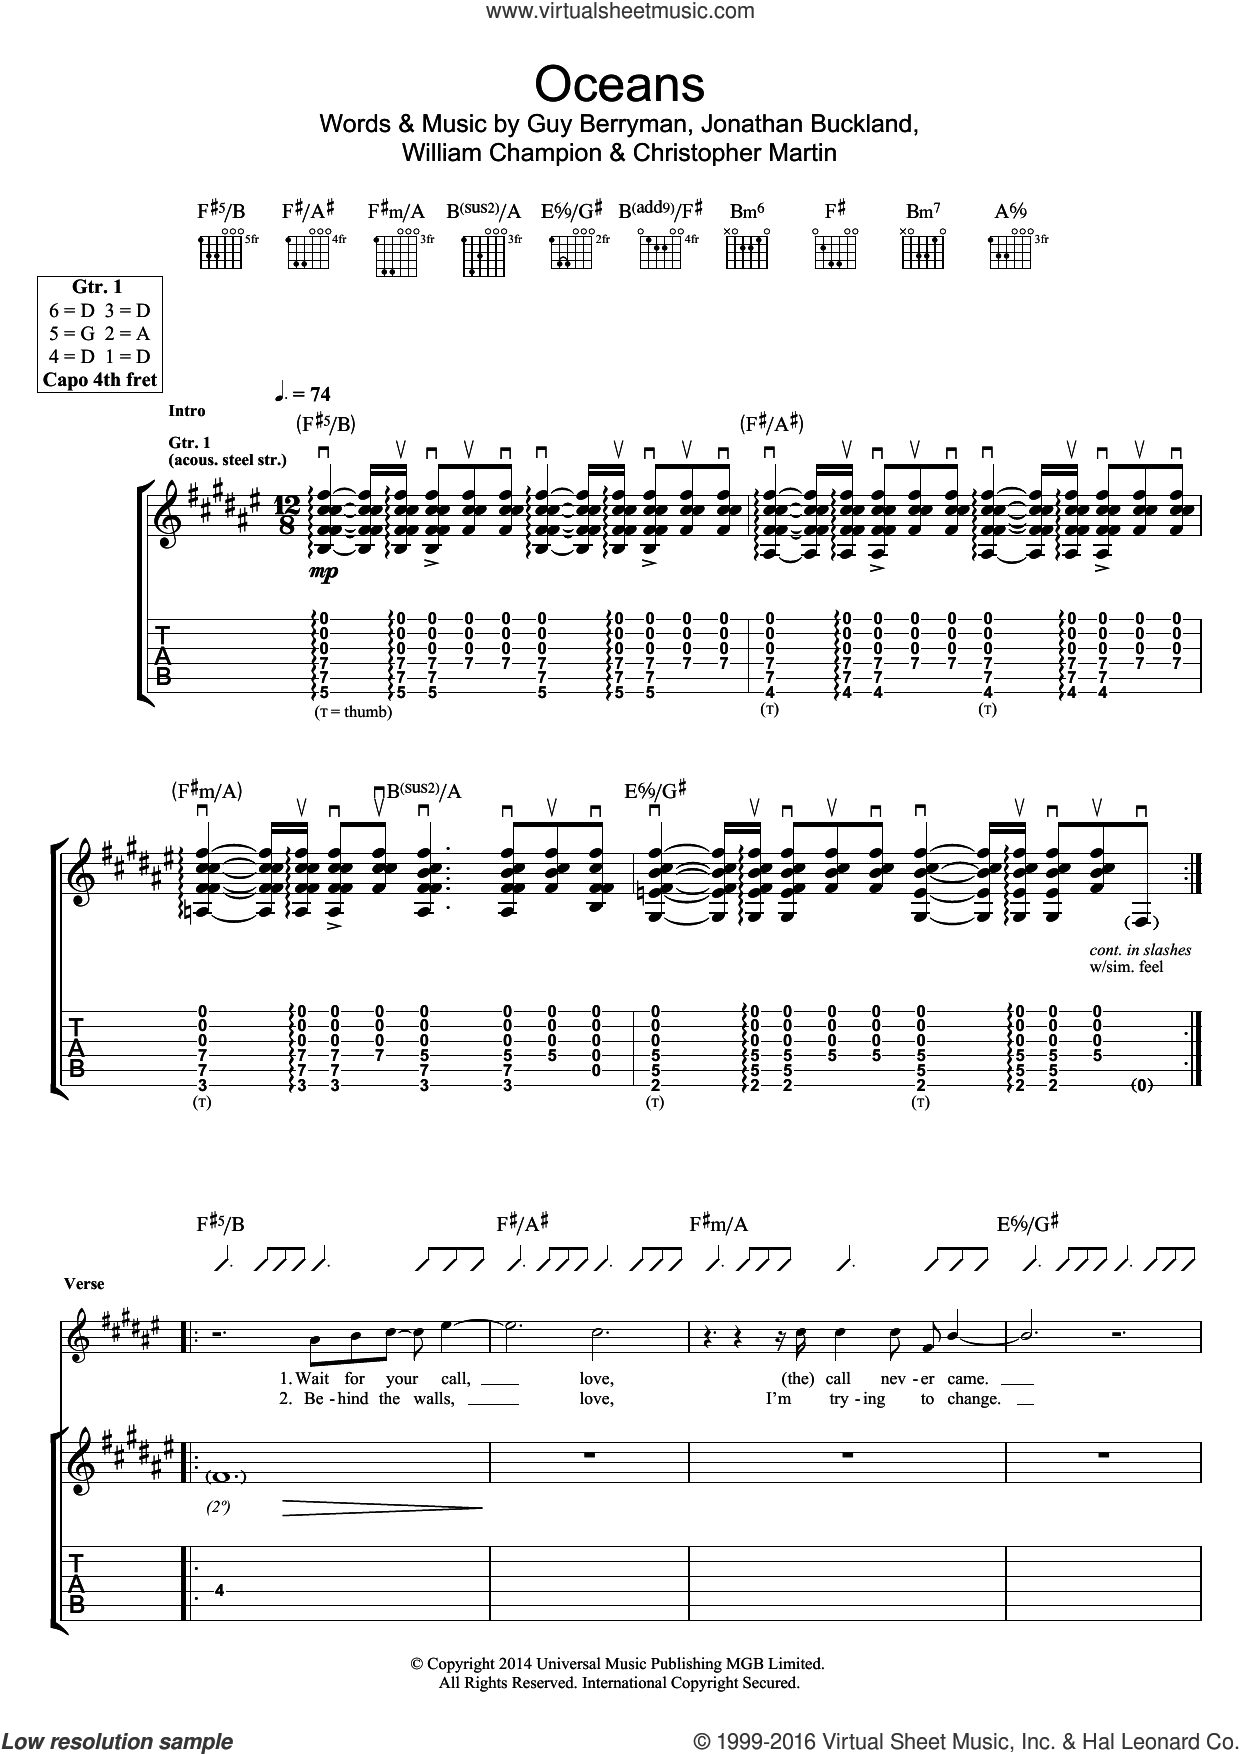 Oceans sheet music for guitar (tablature) by Christopher Martin, Coldplay, Guy Berryman and William Champion. Score Image Preview.